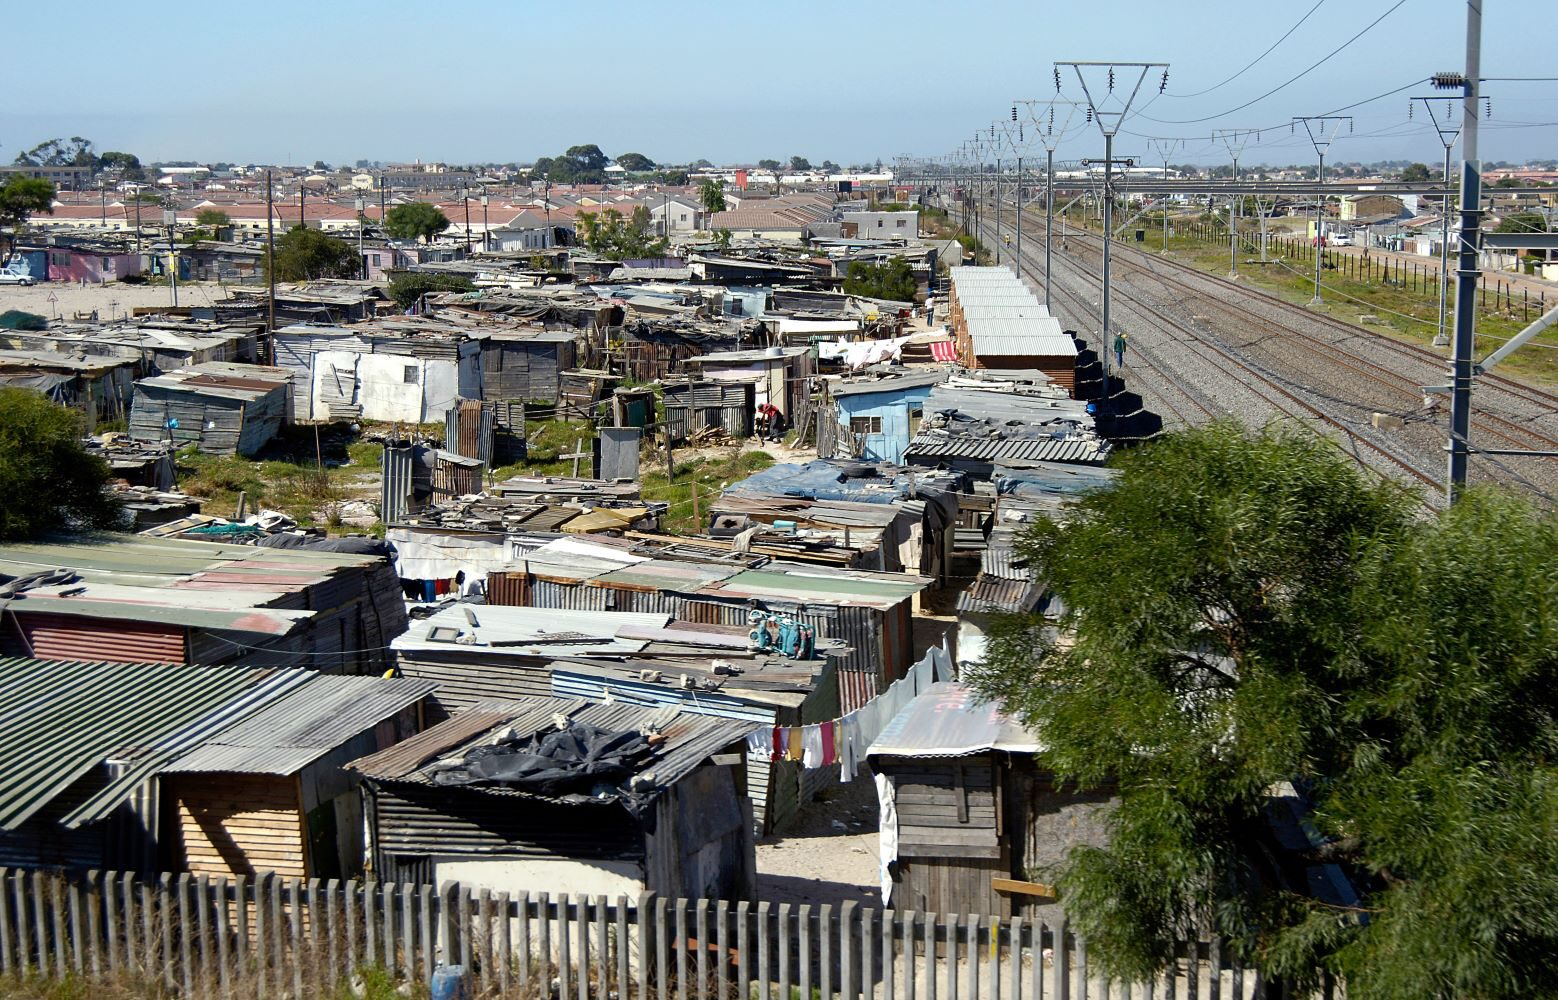 View of poor huts of Khayelitsha Township, one of the many black settlements in South Africa. Even after the official end of apartheid in 1990, most of South Africa's black population still lives in townships.